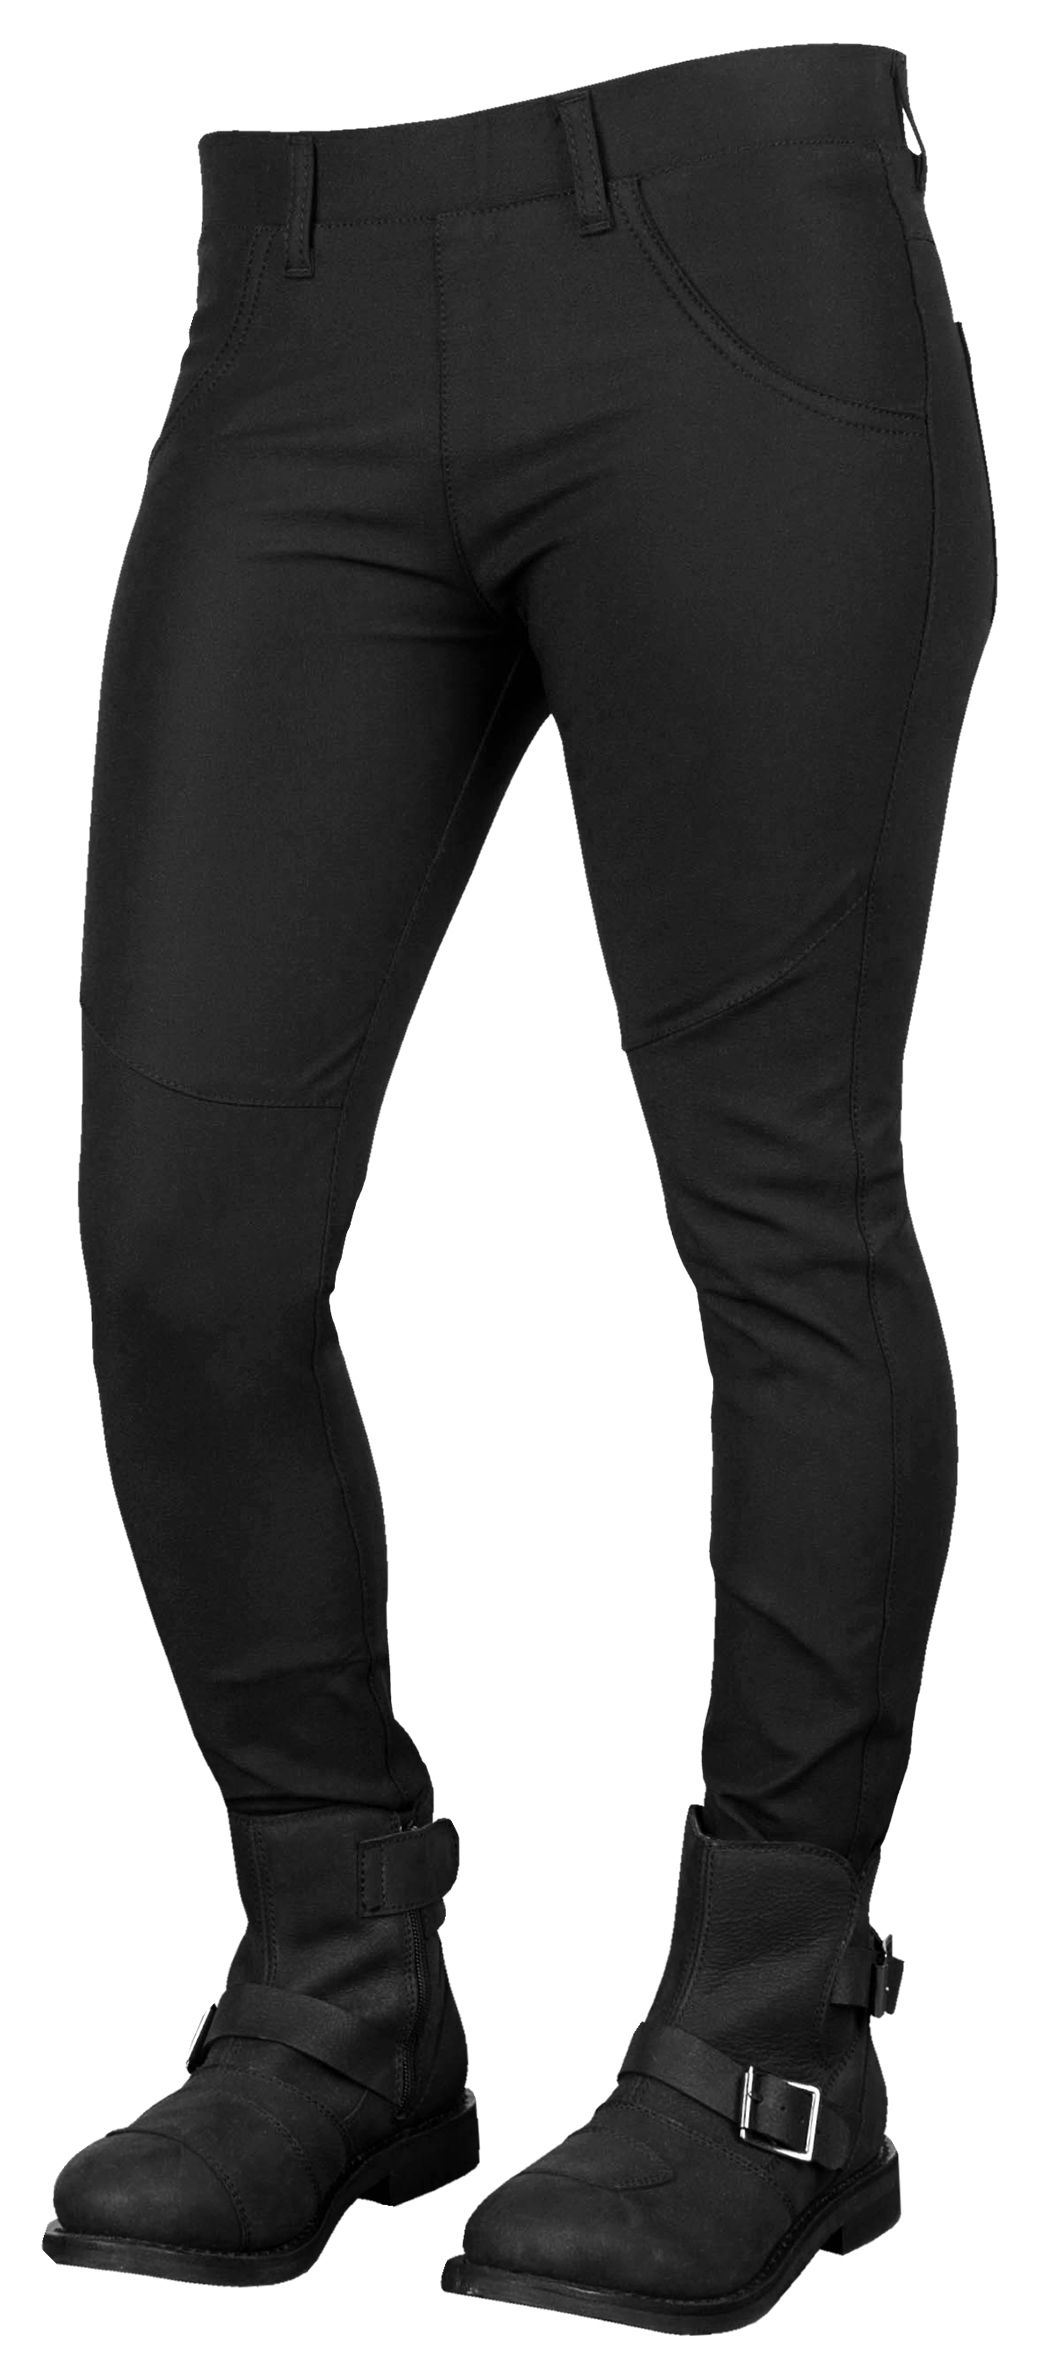 d1a92b2245414 What do you get when you cross a pair of yoga pants with aramid reinforced  riding denim? The Speed and Strength Comin' in Hot Yogamoto Jeans are a bre…